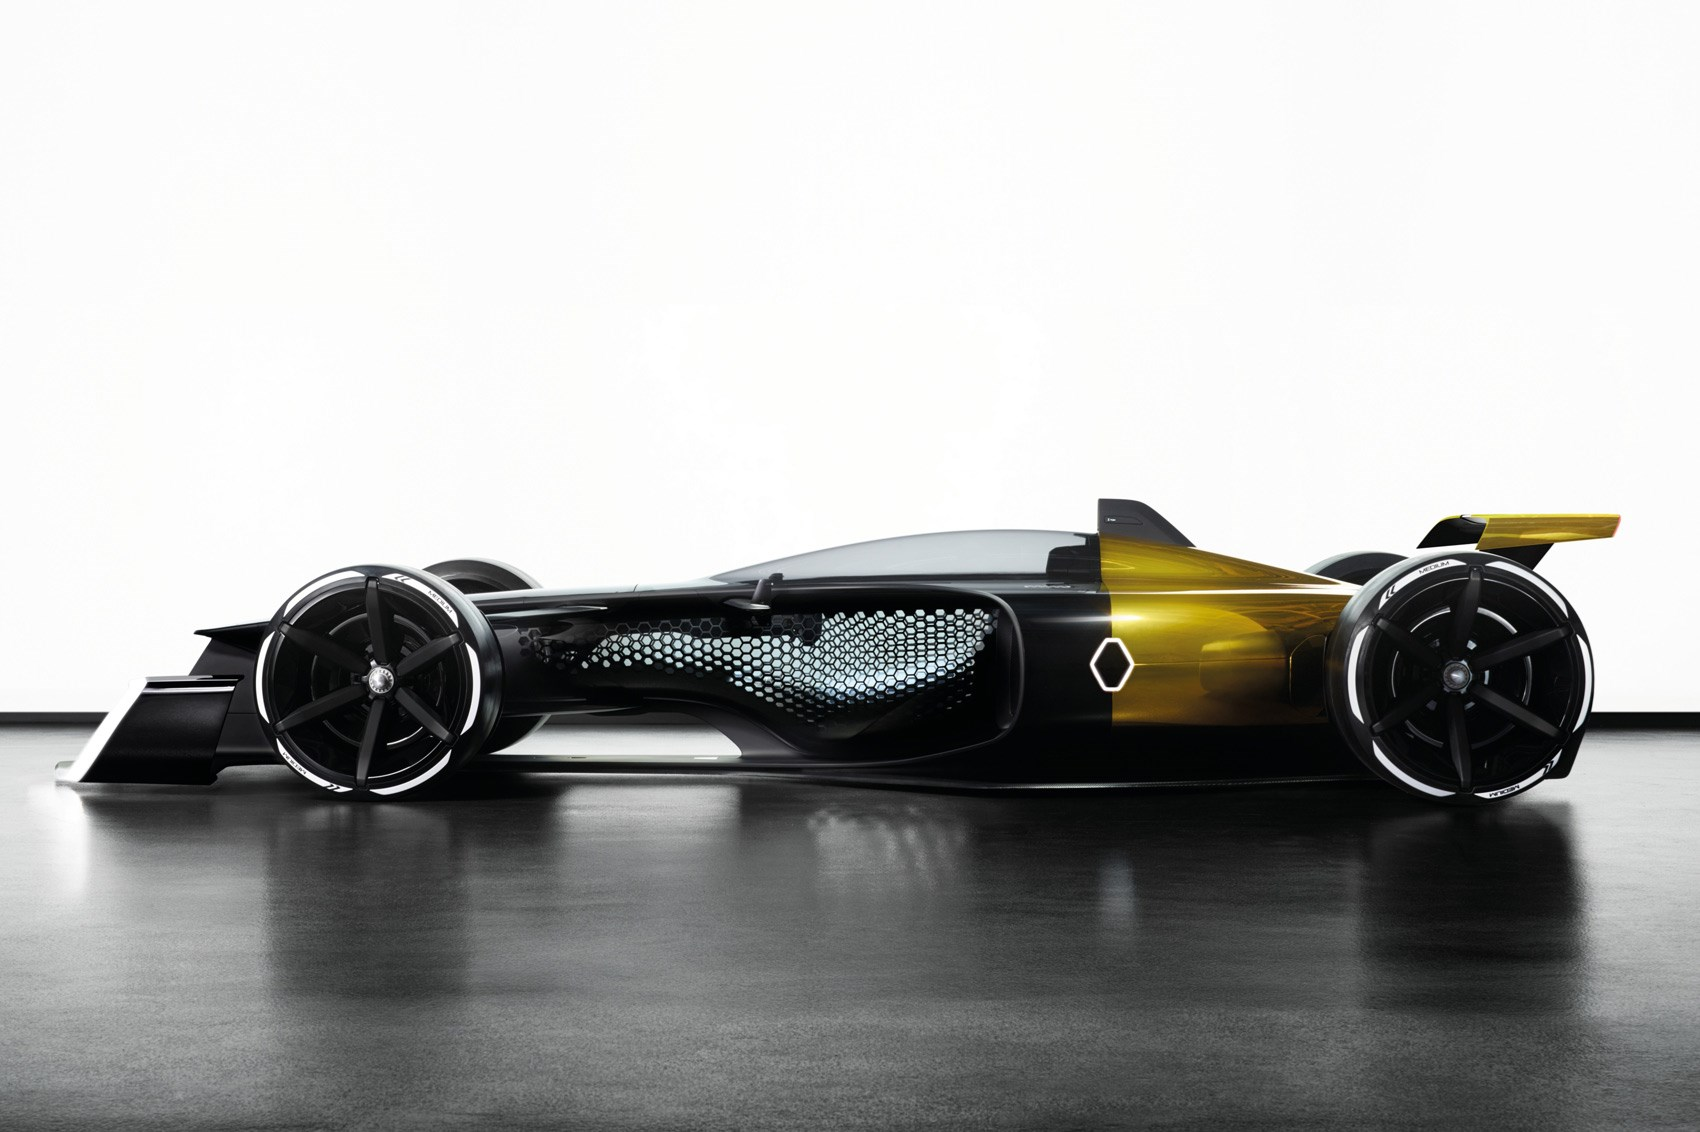 Renault S Rs 2027 Vision Concept Car Previews The Future